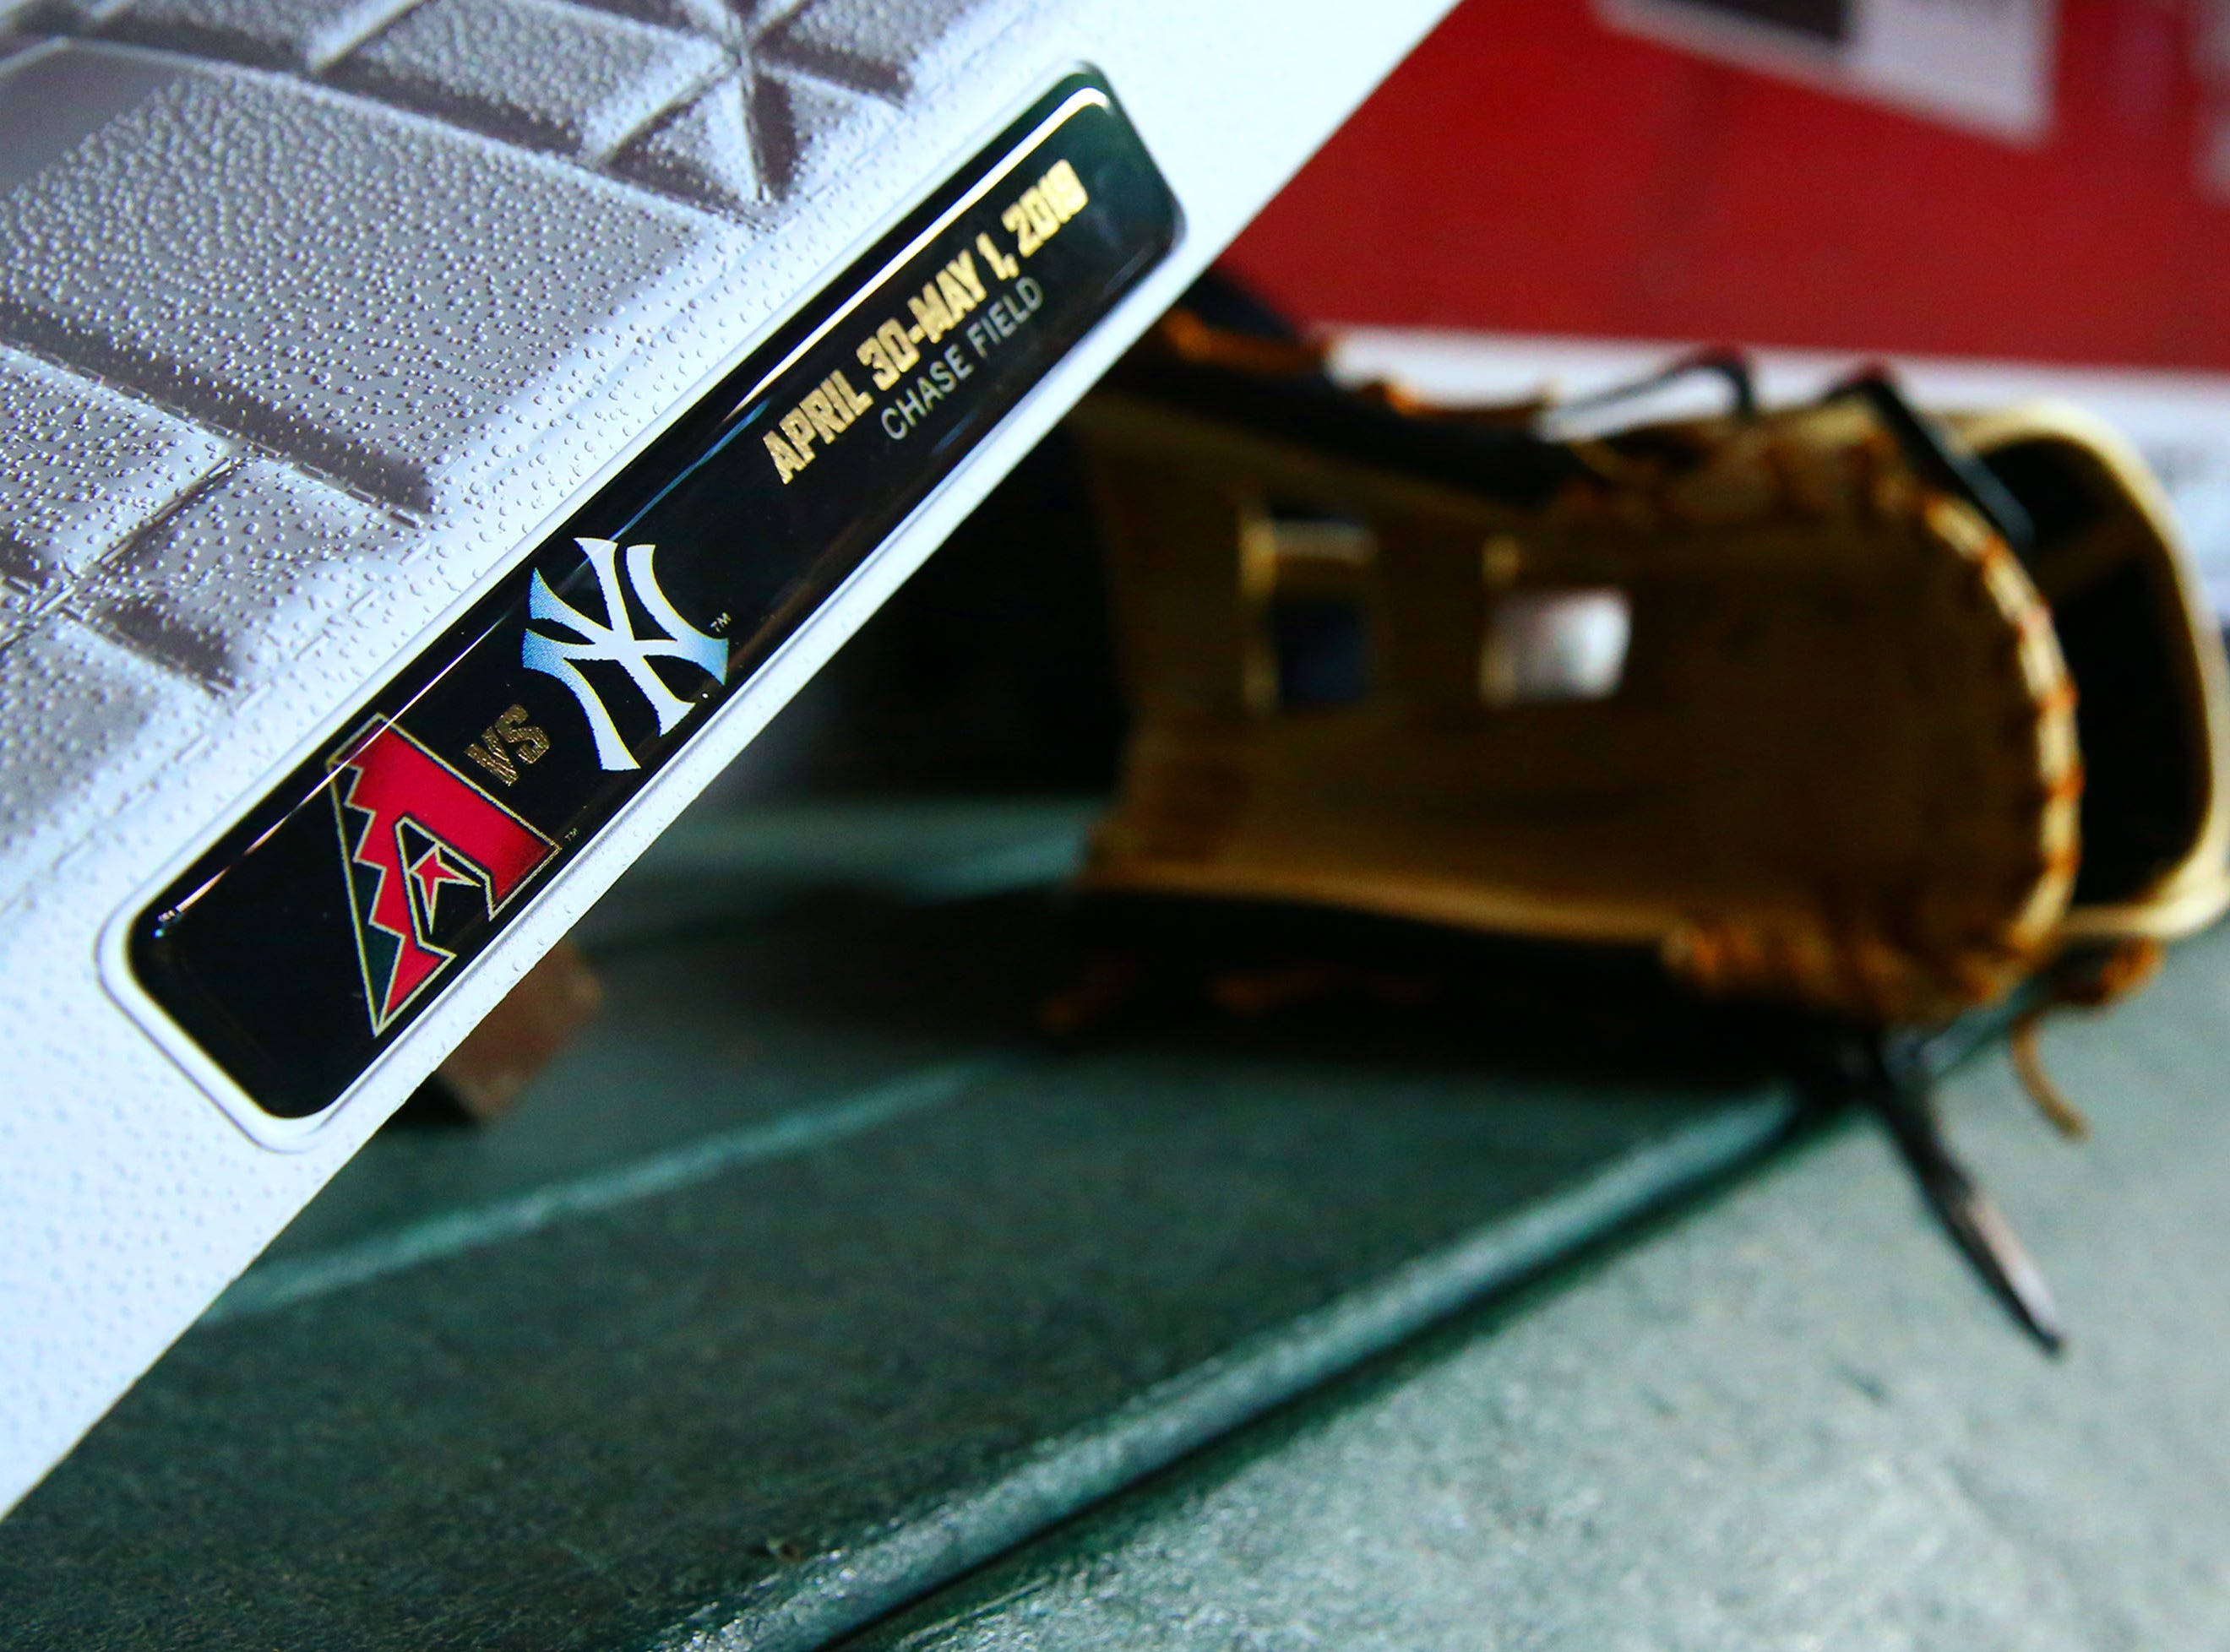 Special labeled bases for the game as Arizona Diamondbacks host the New York Yankees on Apr. 30, 2019 at Chase Field in Phoenix, Ariz.